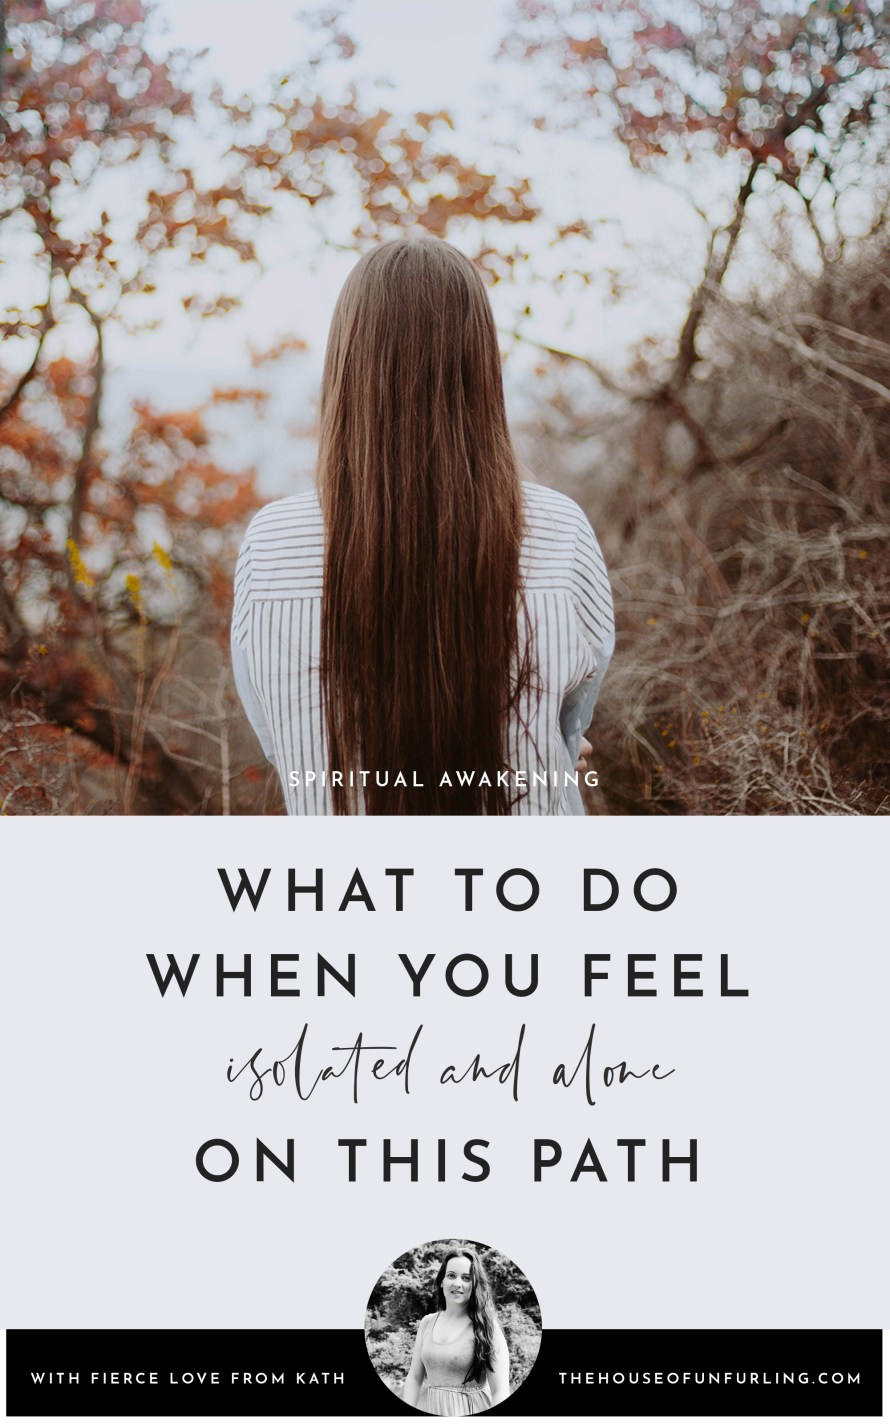 CLICK THROUGH TO READ: What to do when you feel isolated and alone on this path of spiritual awakening. From Deepening Into Intuition. With fierce love, Kath - kathleensaelens.com